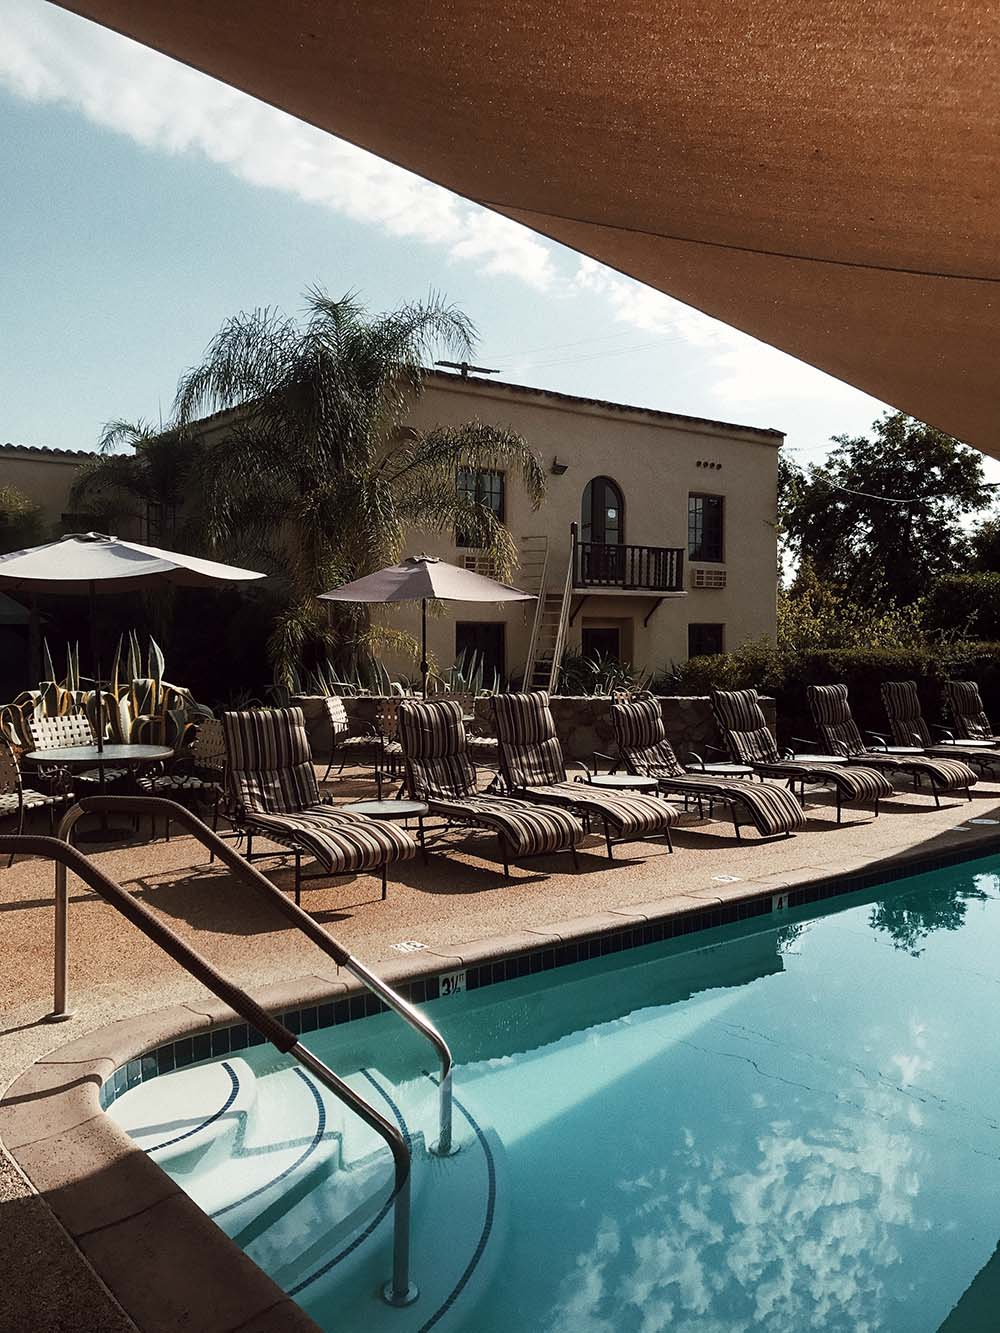 the oaks, the oaks at ojai, ojai, retreat, women, relax, getaway, girls day, weekend, travel, melrodstyle, lifestyle, melrodbrb, trip, quick getaway, vacation, trending,